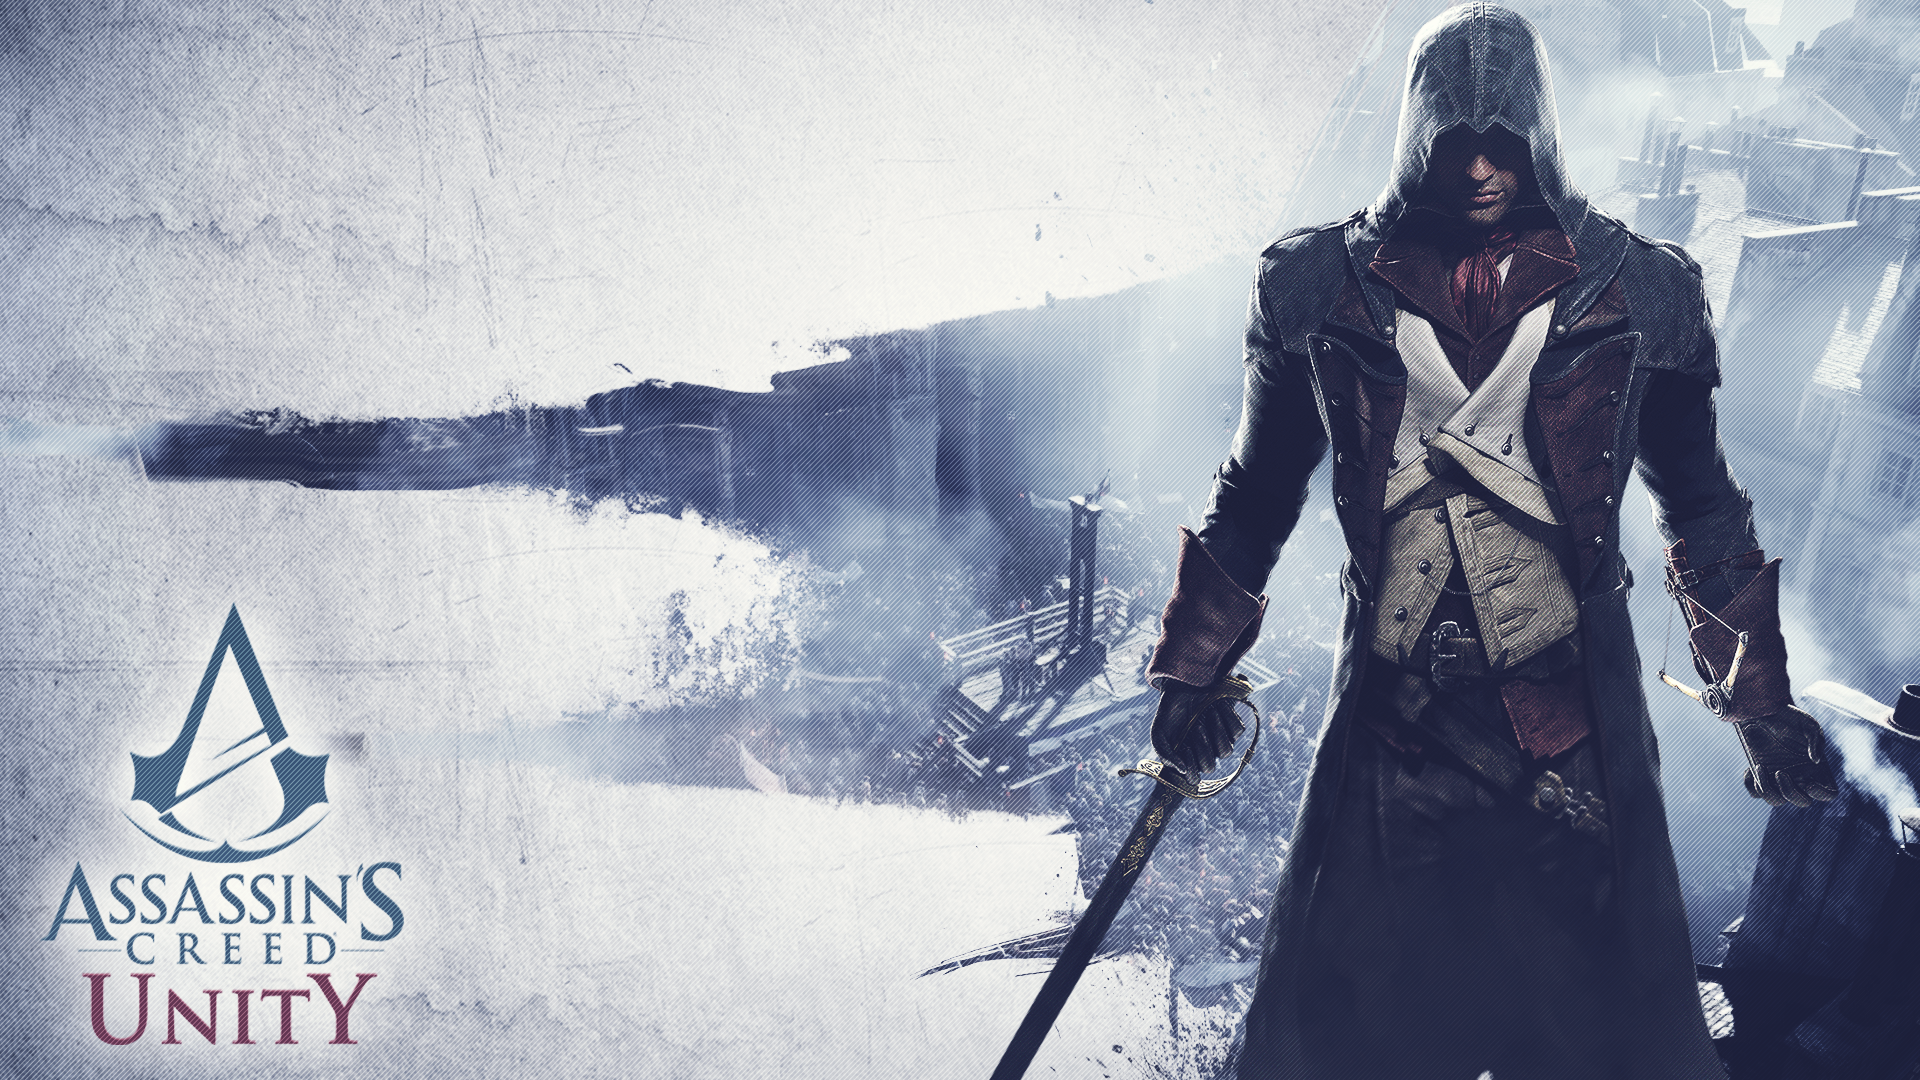 Assassin 39 s creed unity by moonscarf7 on deviantart - Assassin s creed unity wallpaper ...